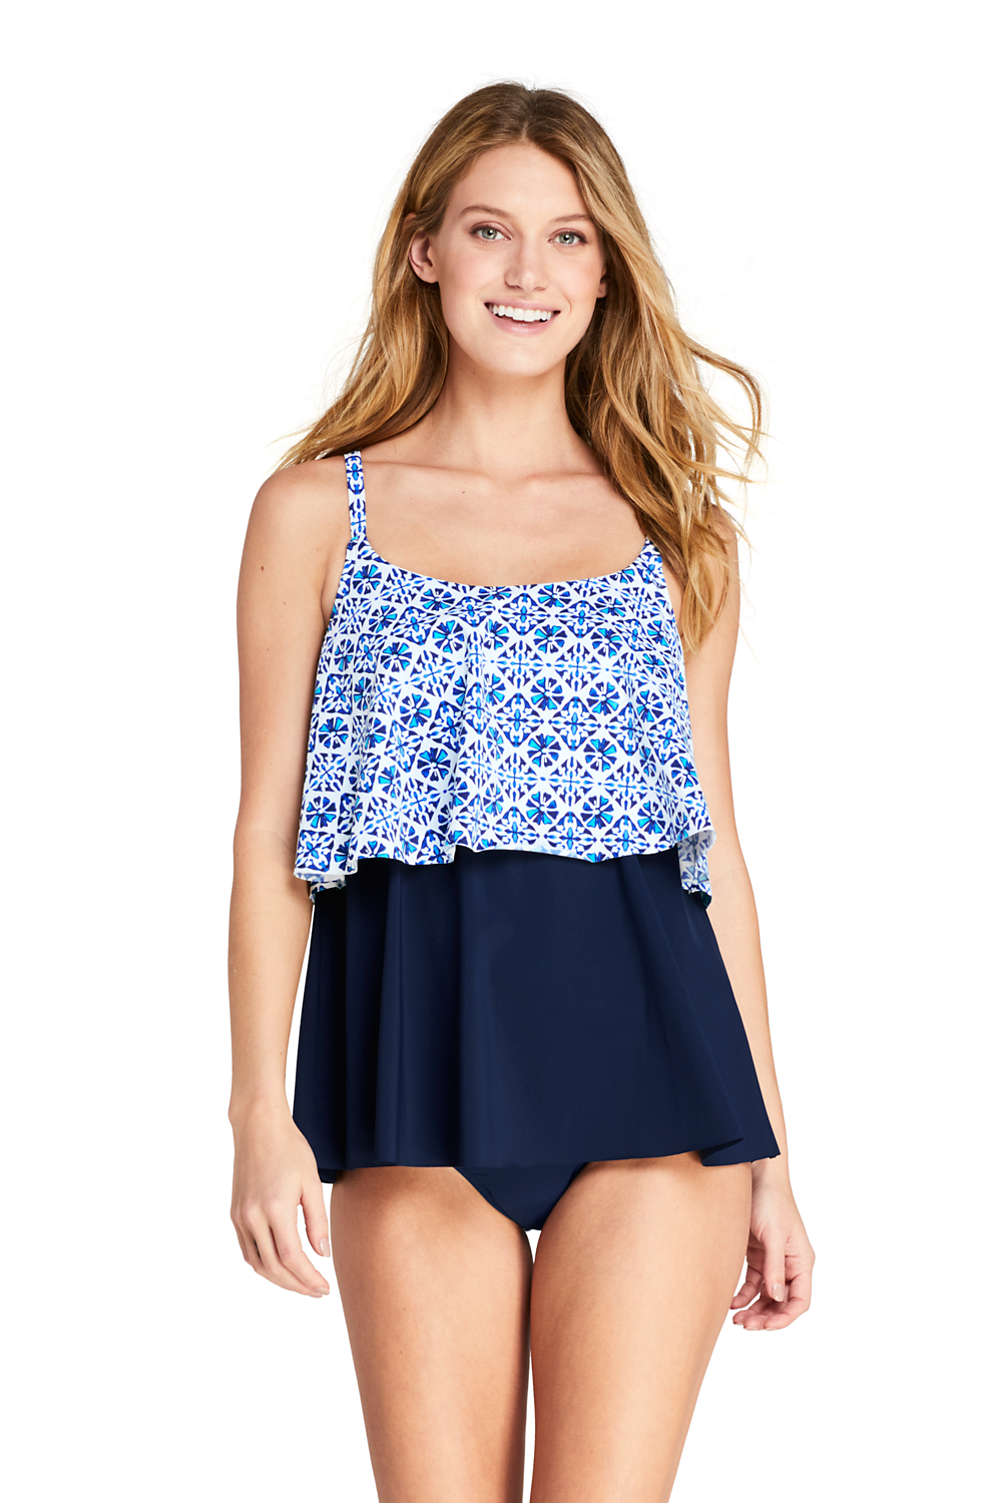 b3320a692a33d Women s Tiered Ruffle Tankini Top Swimsuit Print from Lands  End